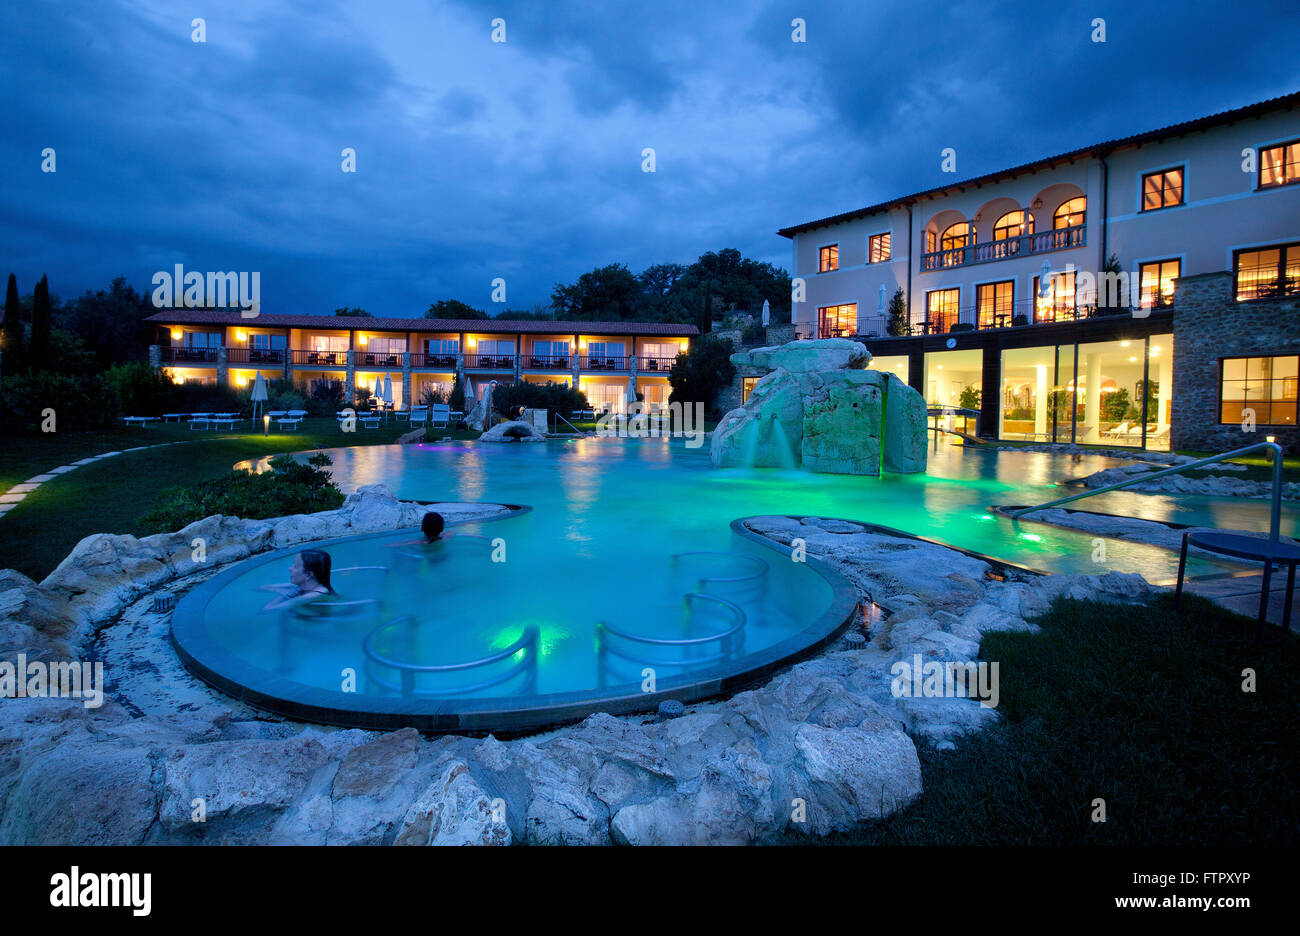 Adler Thermae Hotel Adler Thermae Spa & Relax Resort,bagno Vignoni